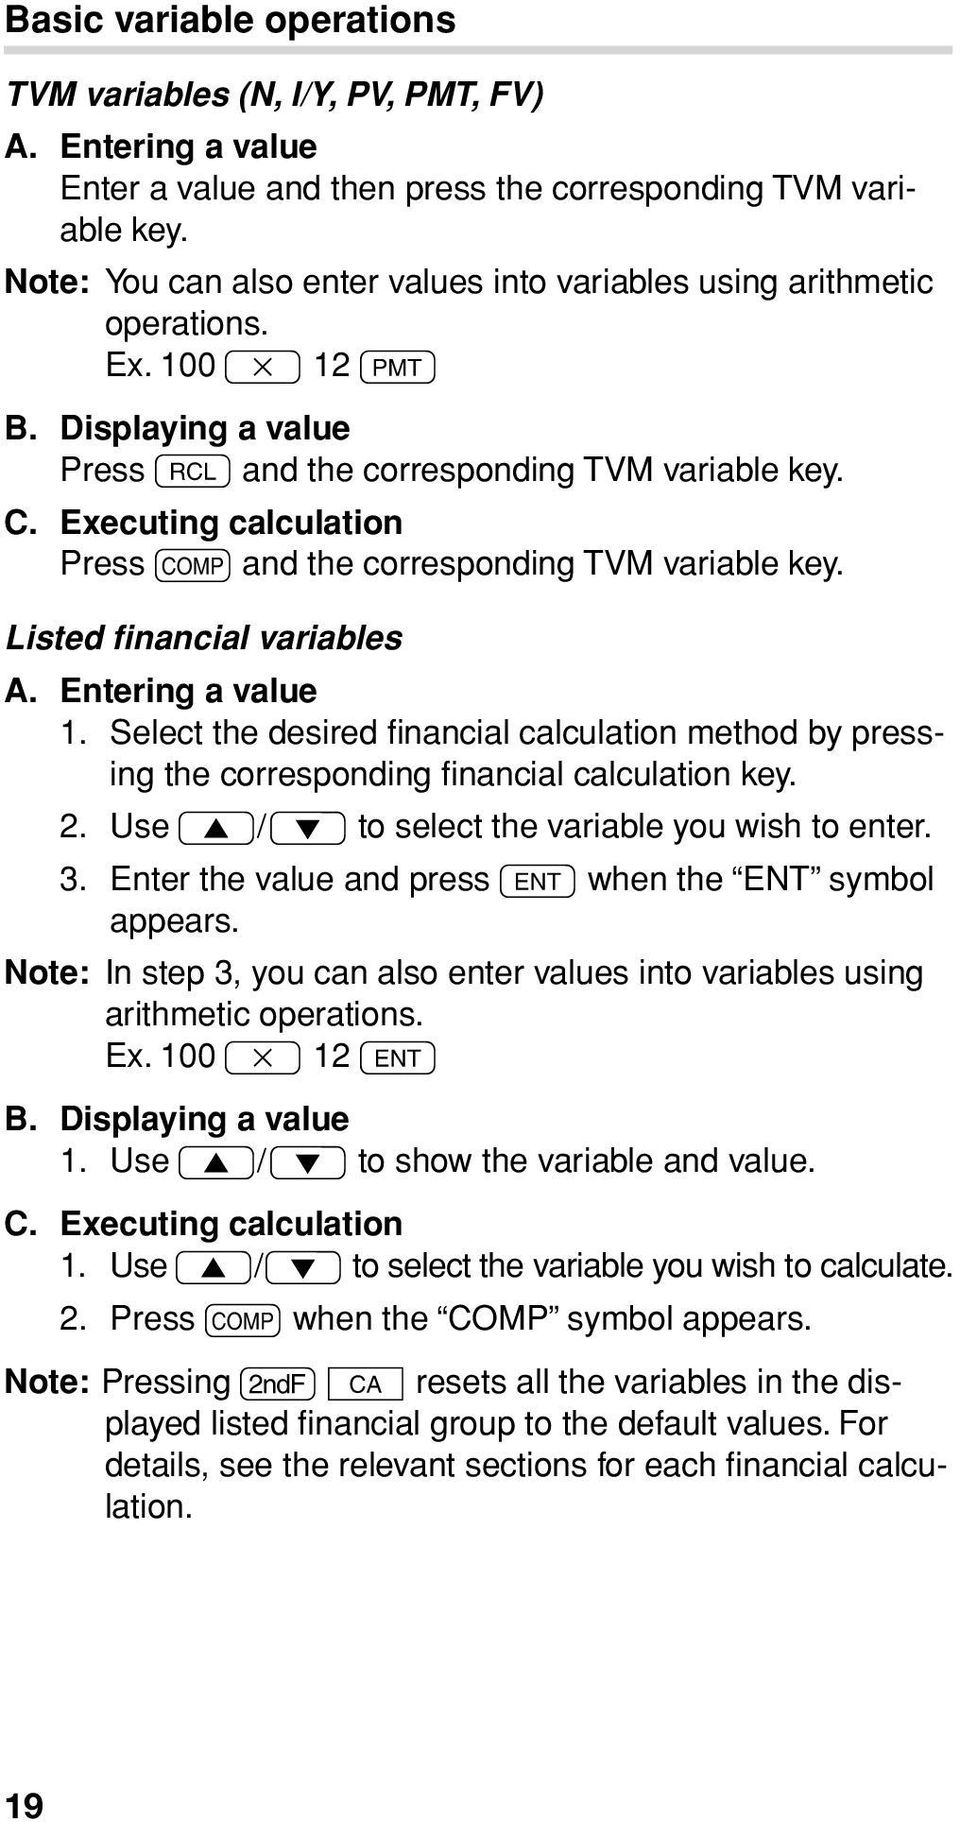 Executing calculation Press @ and the corresponding TVM variable key. Listed financial variables A. Entering a value 1.